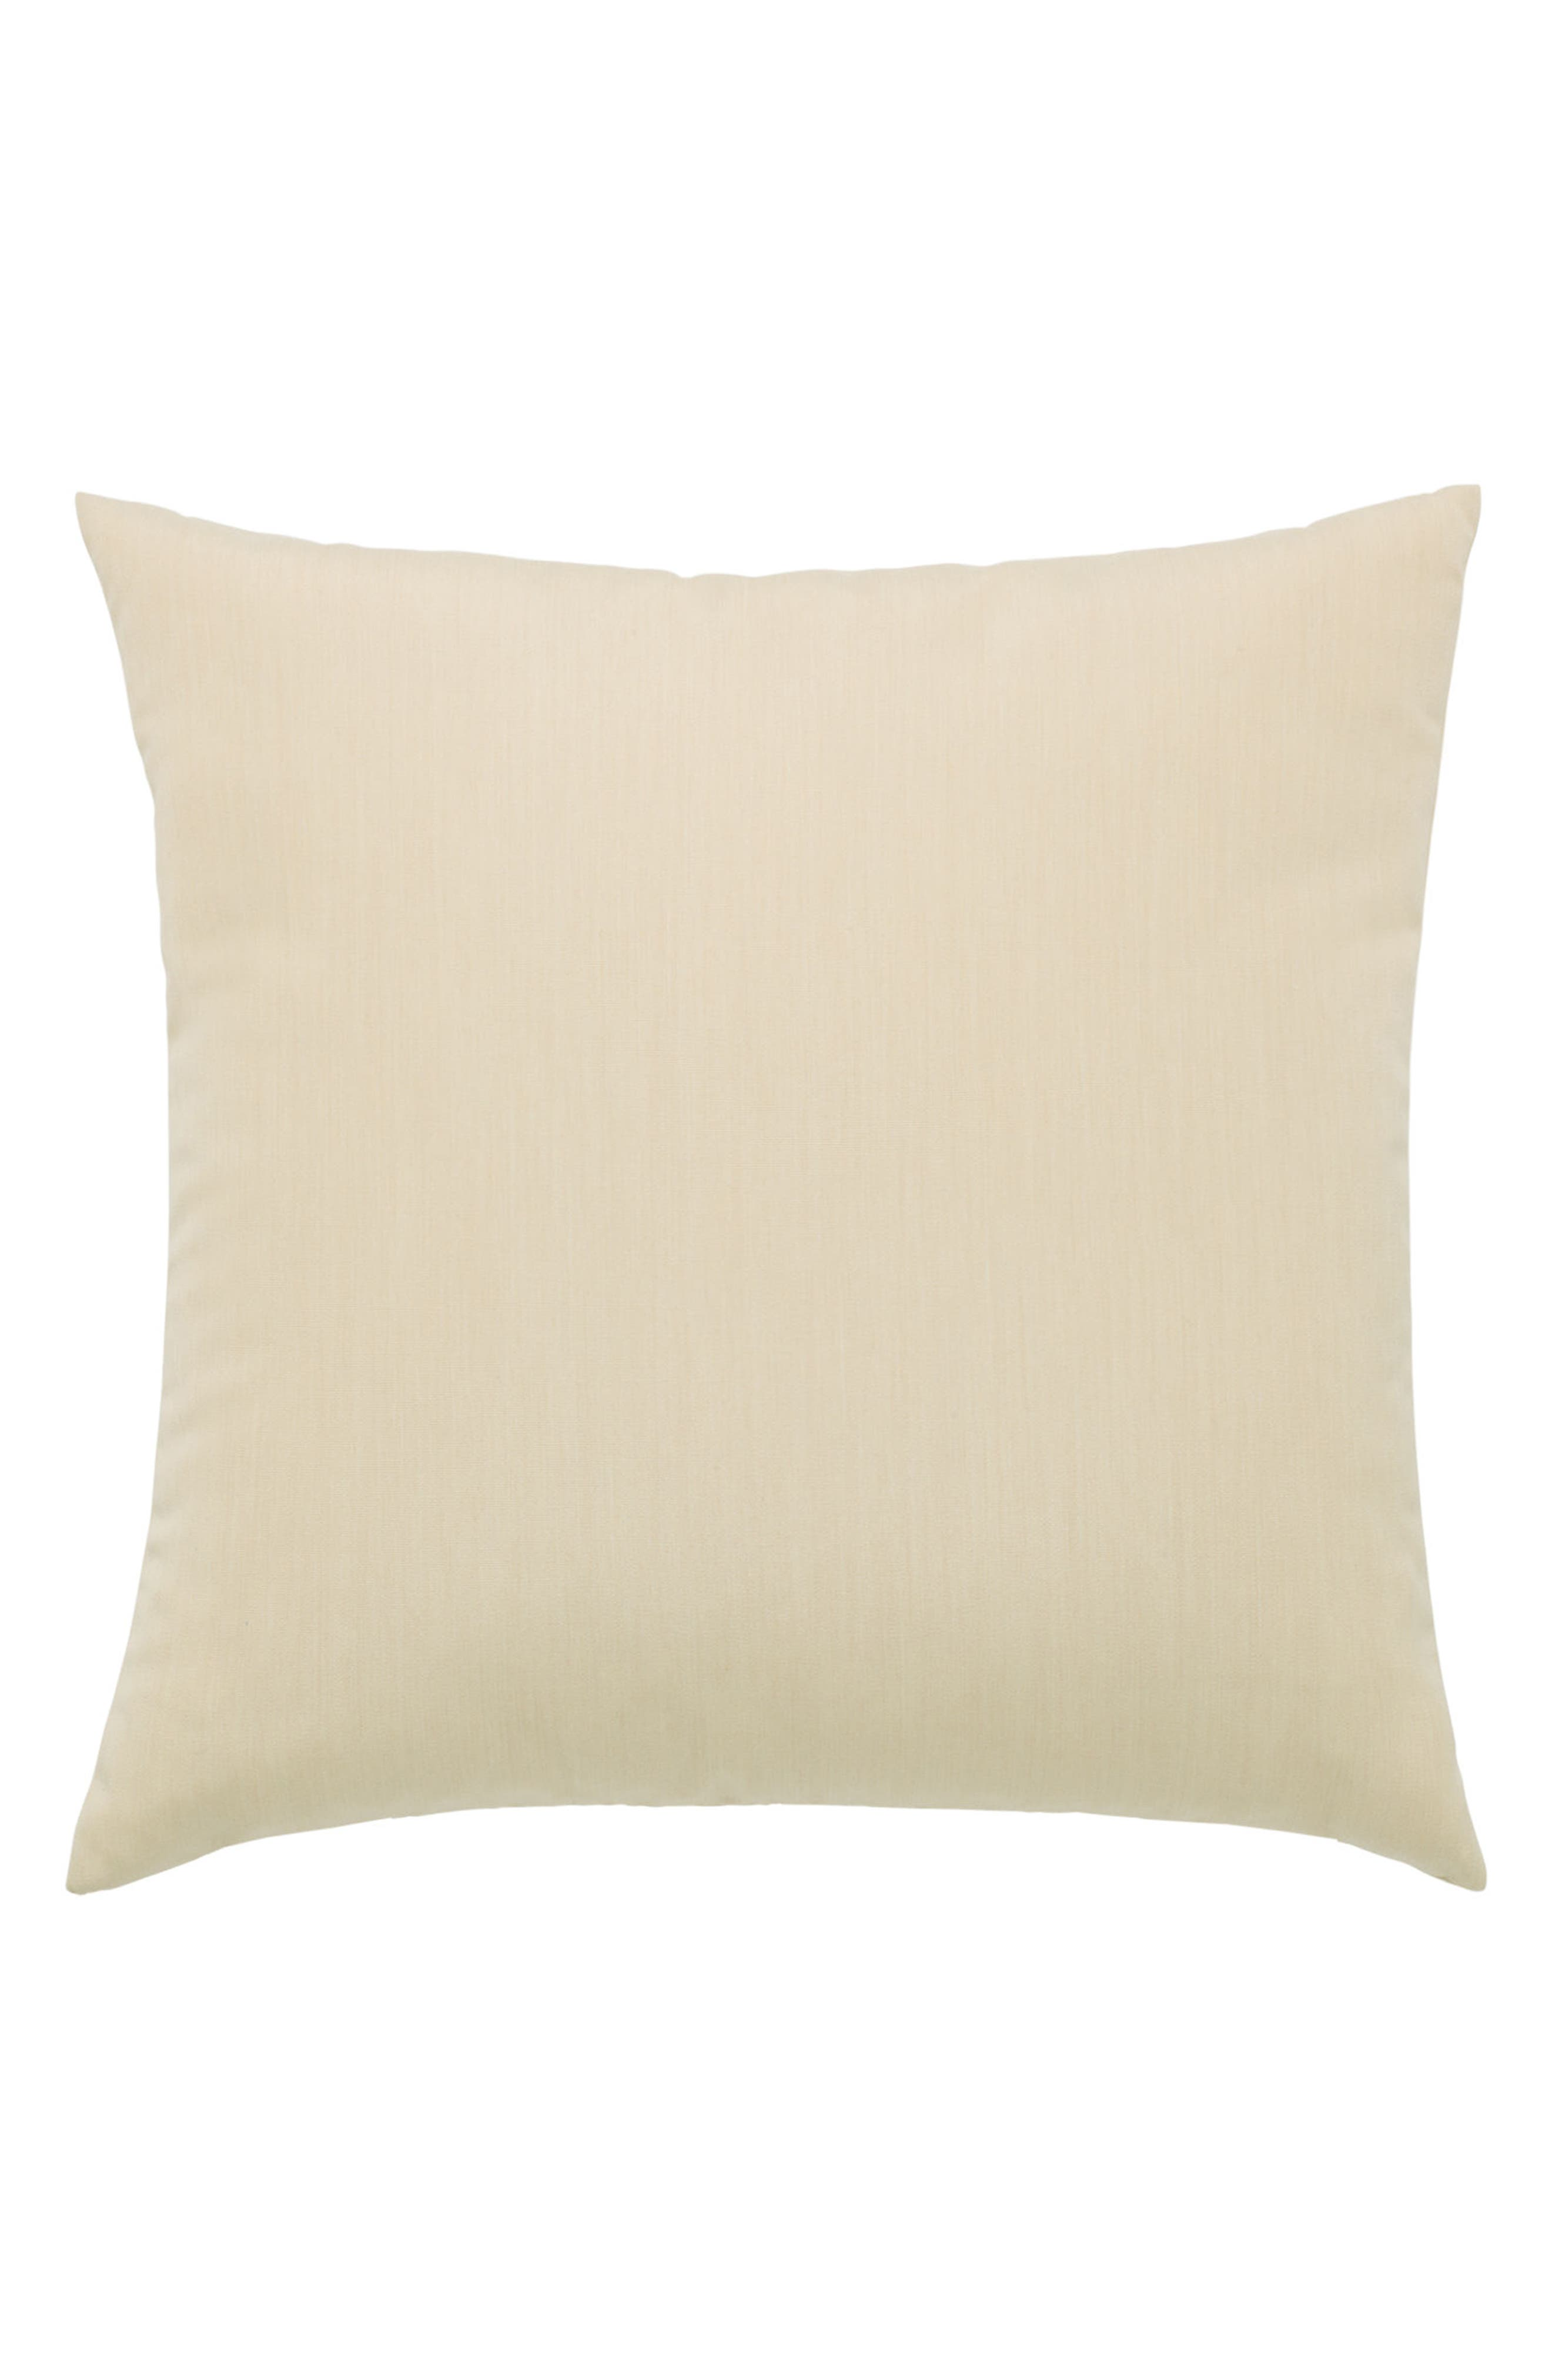 Alternate Image 2  - Elaine Smith Coral Sun Indoor/Outdoor Accent Pillow